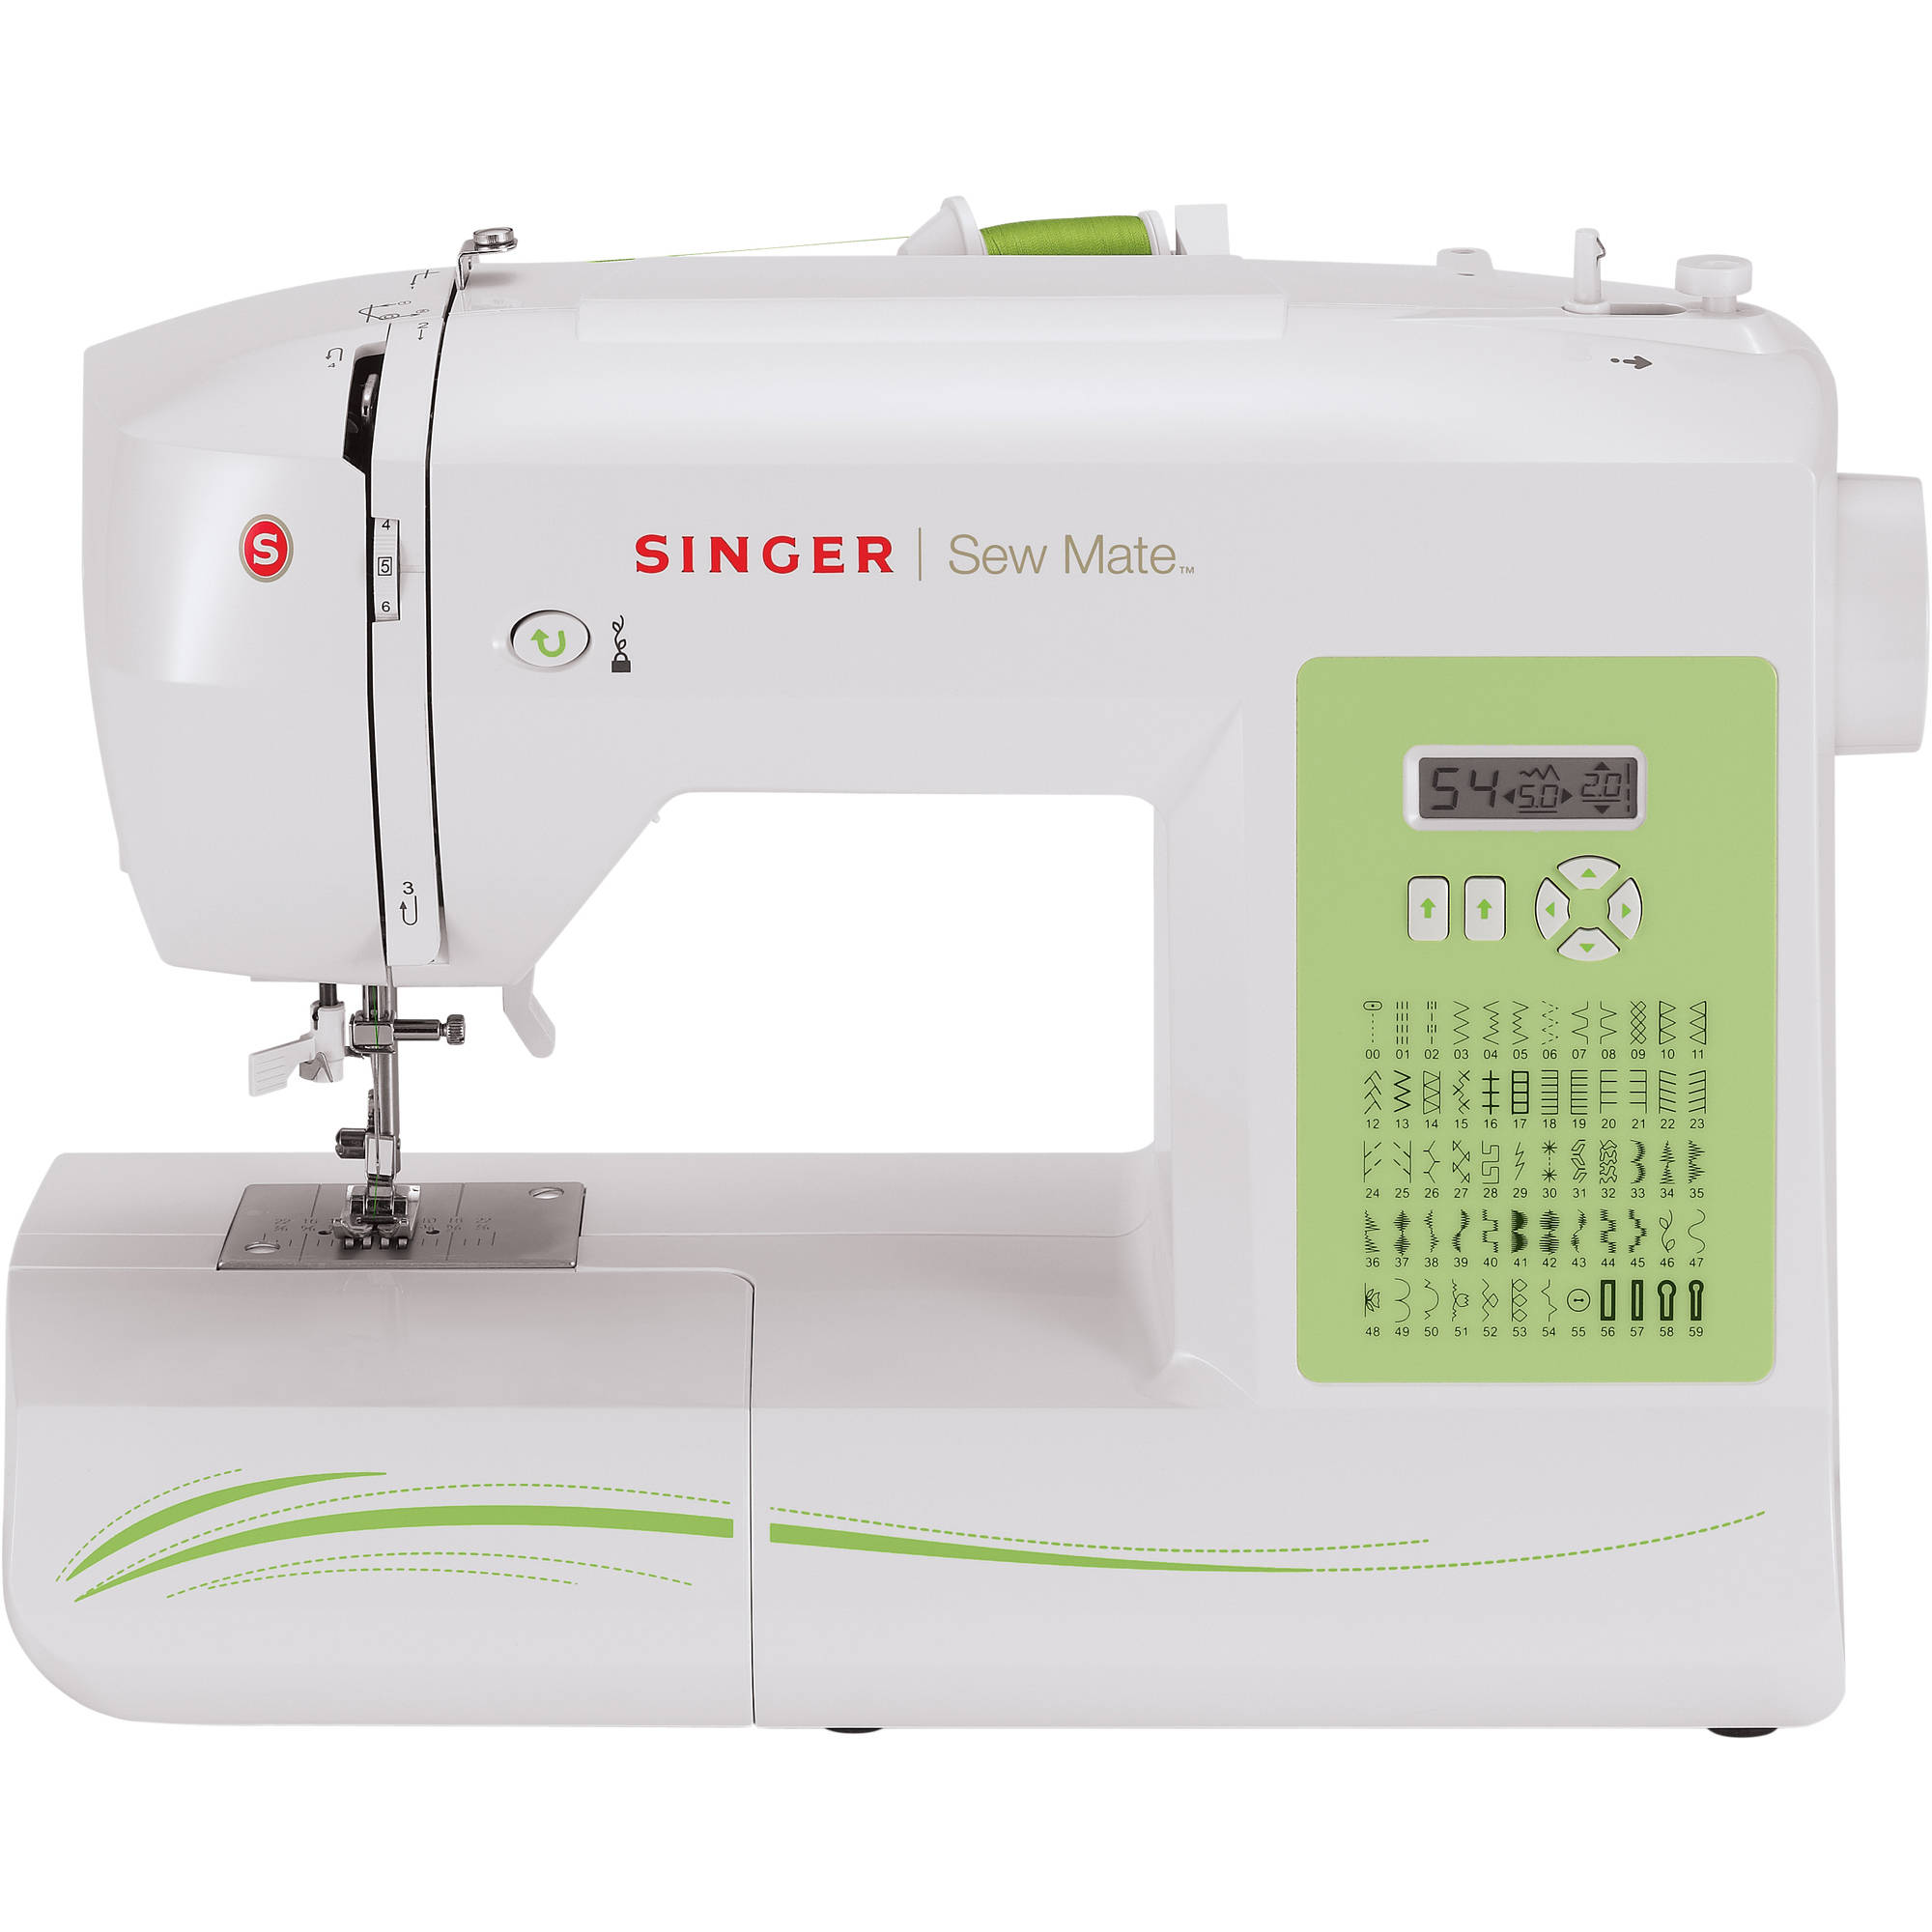 Singer 5400 Sew Mate 60-Stitch Sewing Machine